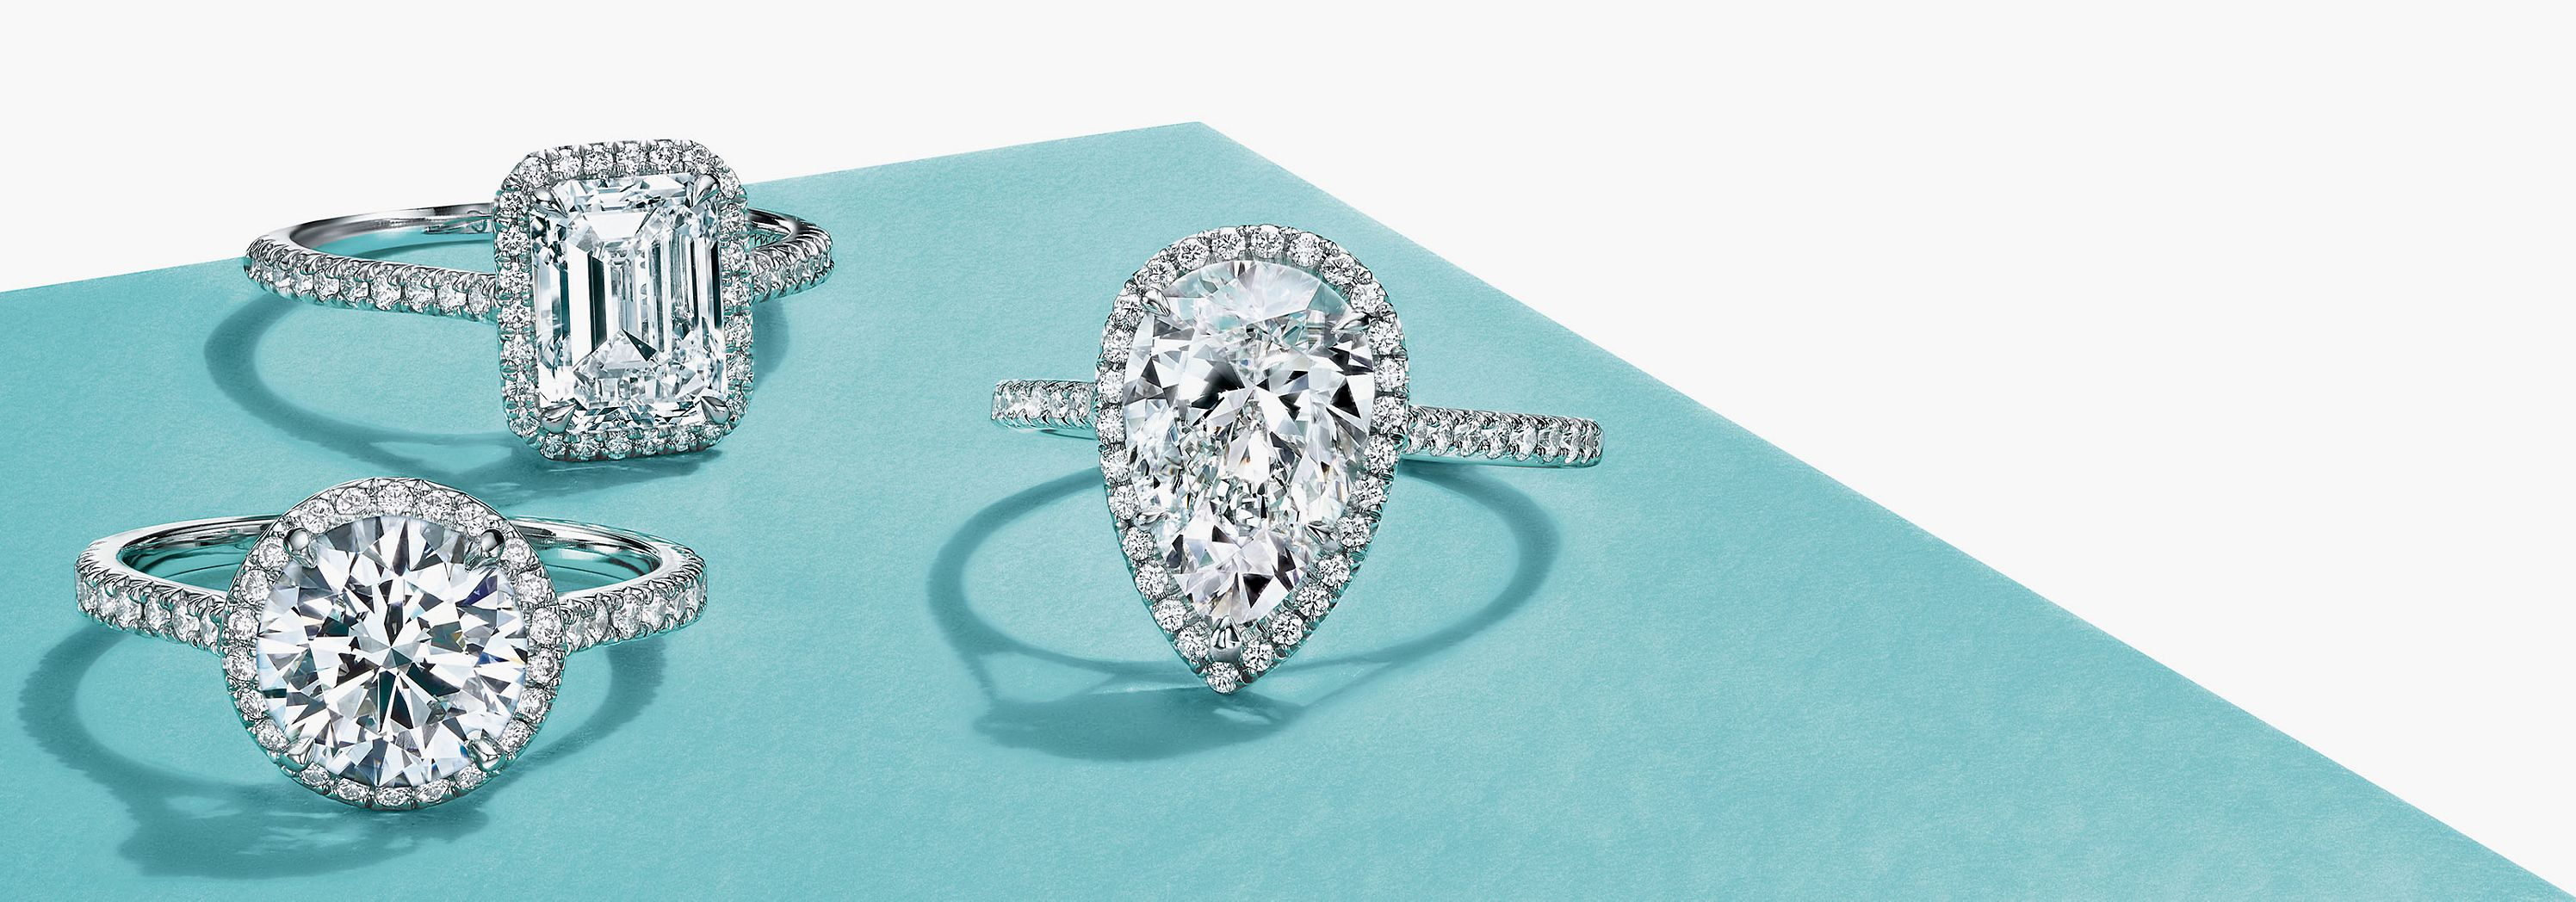 Engagement Ring Diamond Shapes